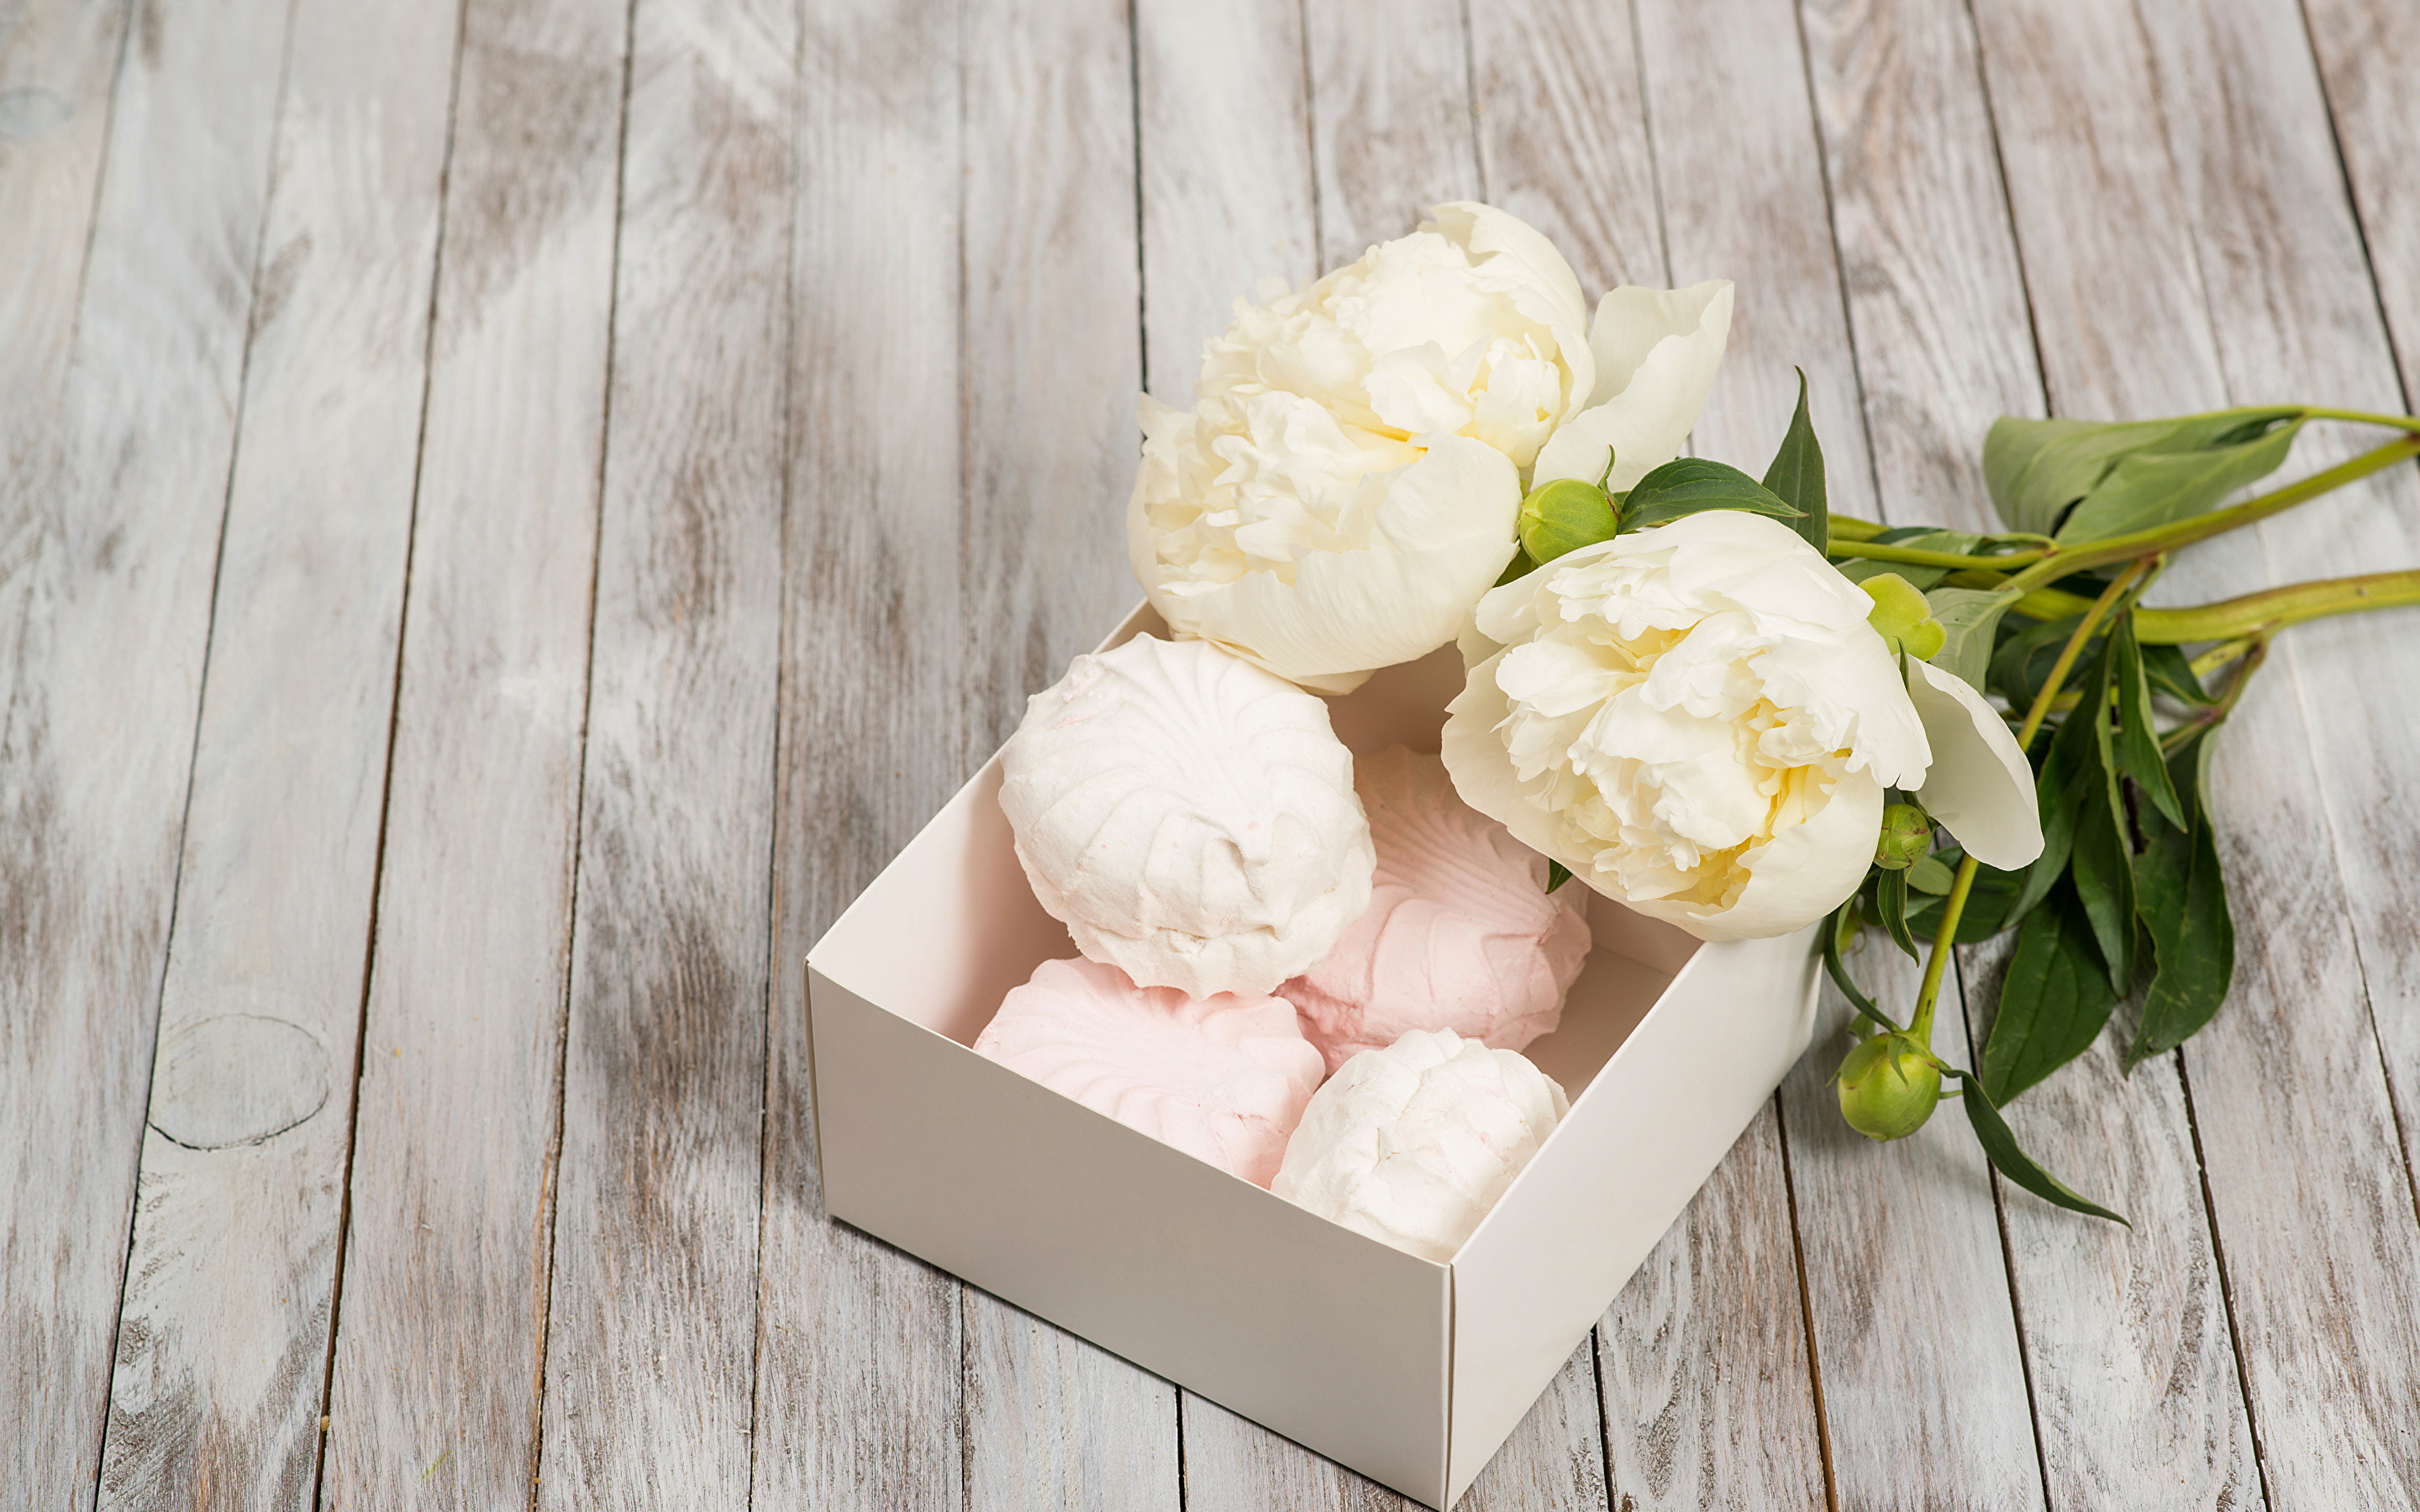 Res: 2880x1800, Wallpaper 2 White Zefir Flowers Peonies Sweets  Two